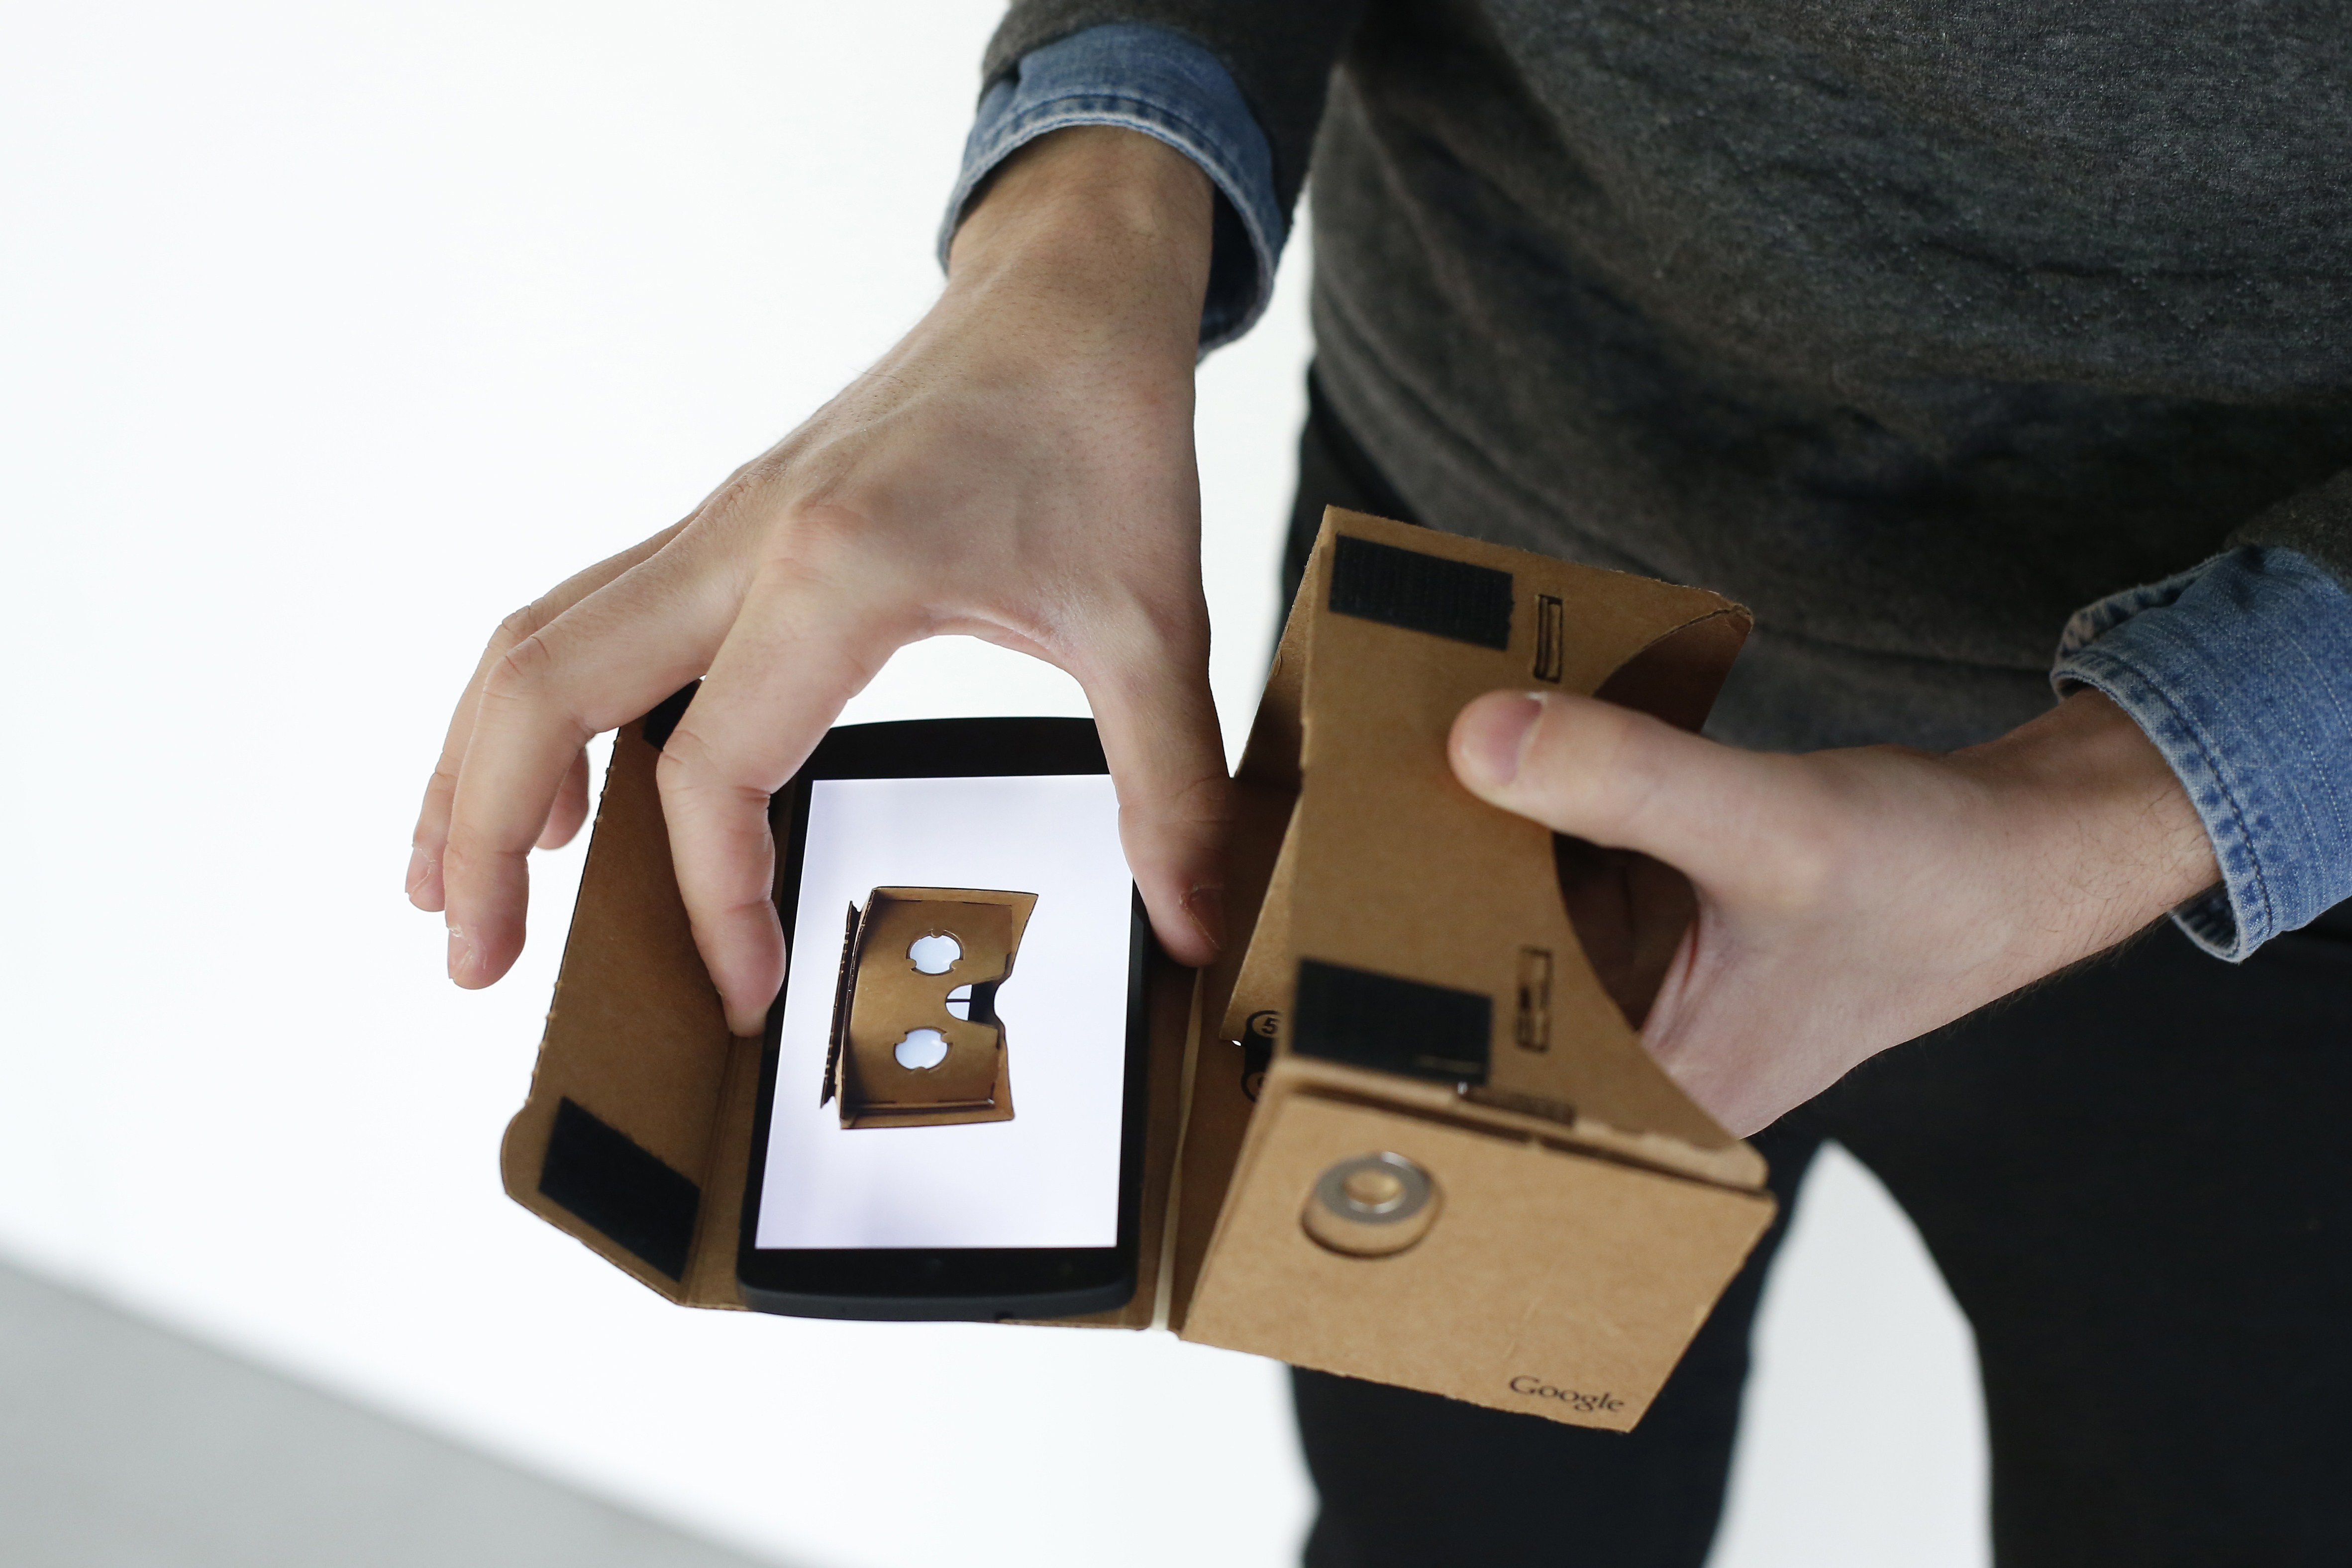 A Google employee presents a Google Cardboard virtual reality headset for android smartphones during a Google promotion event at the City of Fashion and Design (Cite de la mode et du design) in Paris on November 4, 2014.